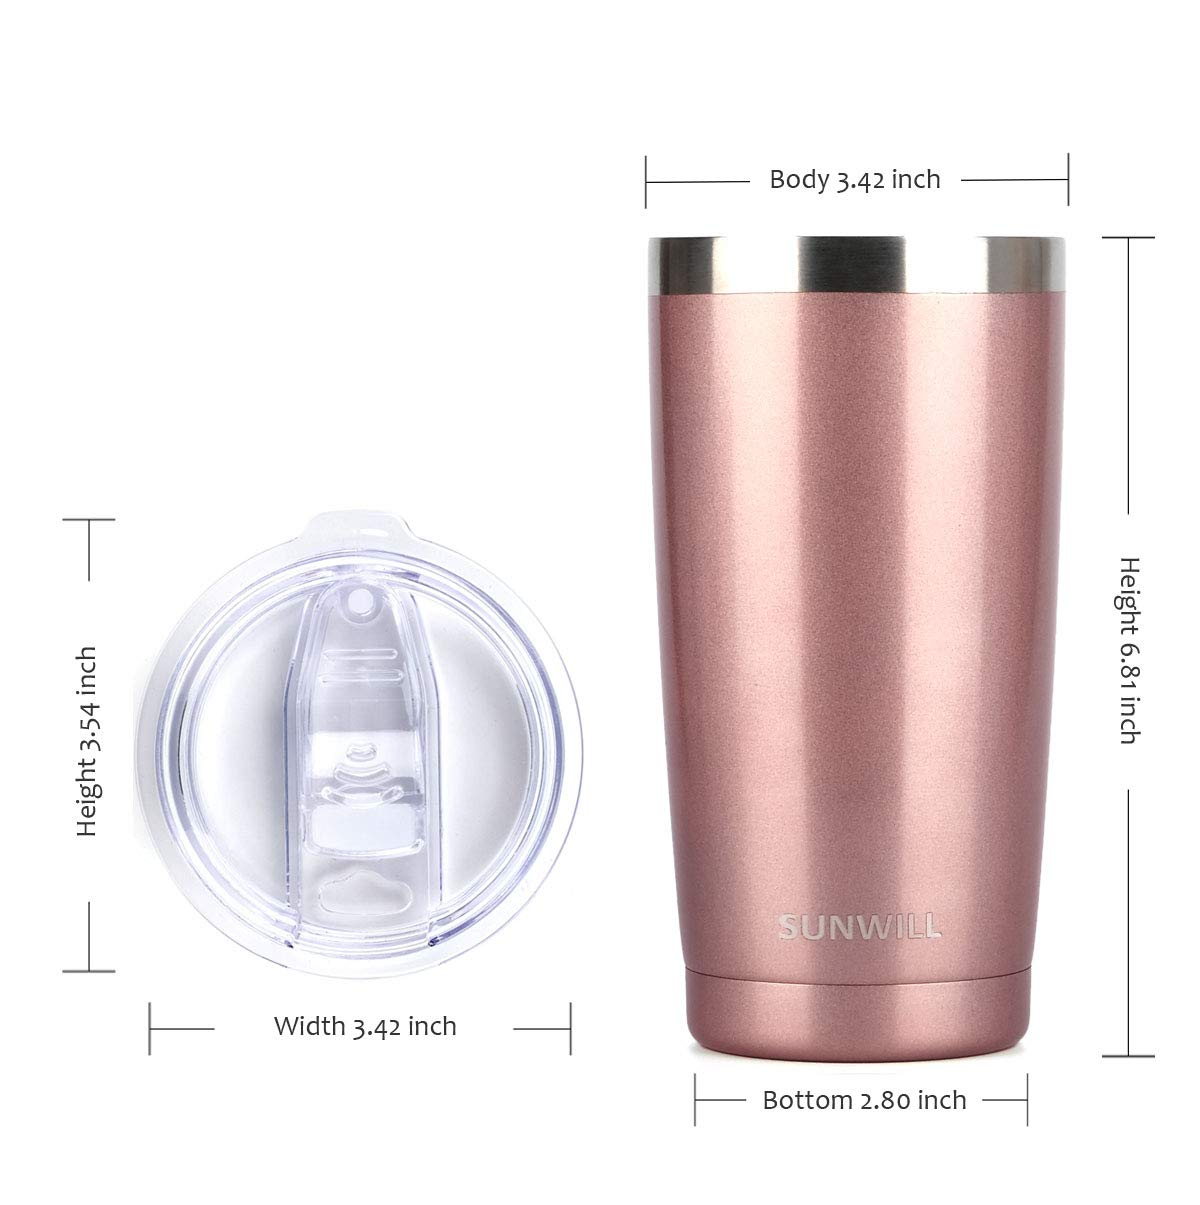 Stainless Steel Vacuum Insulated Double Wall Travel Tumbler Rose Gold 2 pack Thermal Cup with Splash Proof Sliding Lid SUNWILL 20oz Tumbler with Lid Durable Insulated Coffee Mug